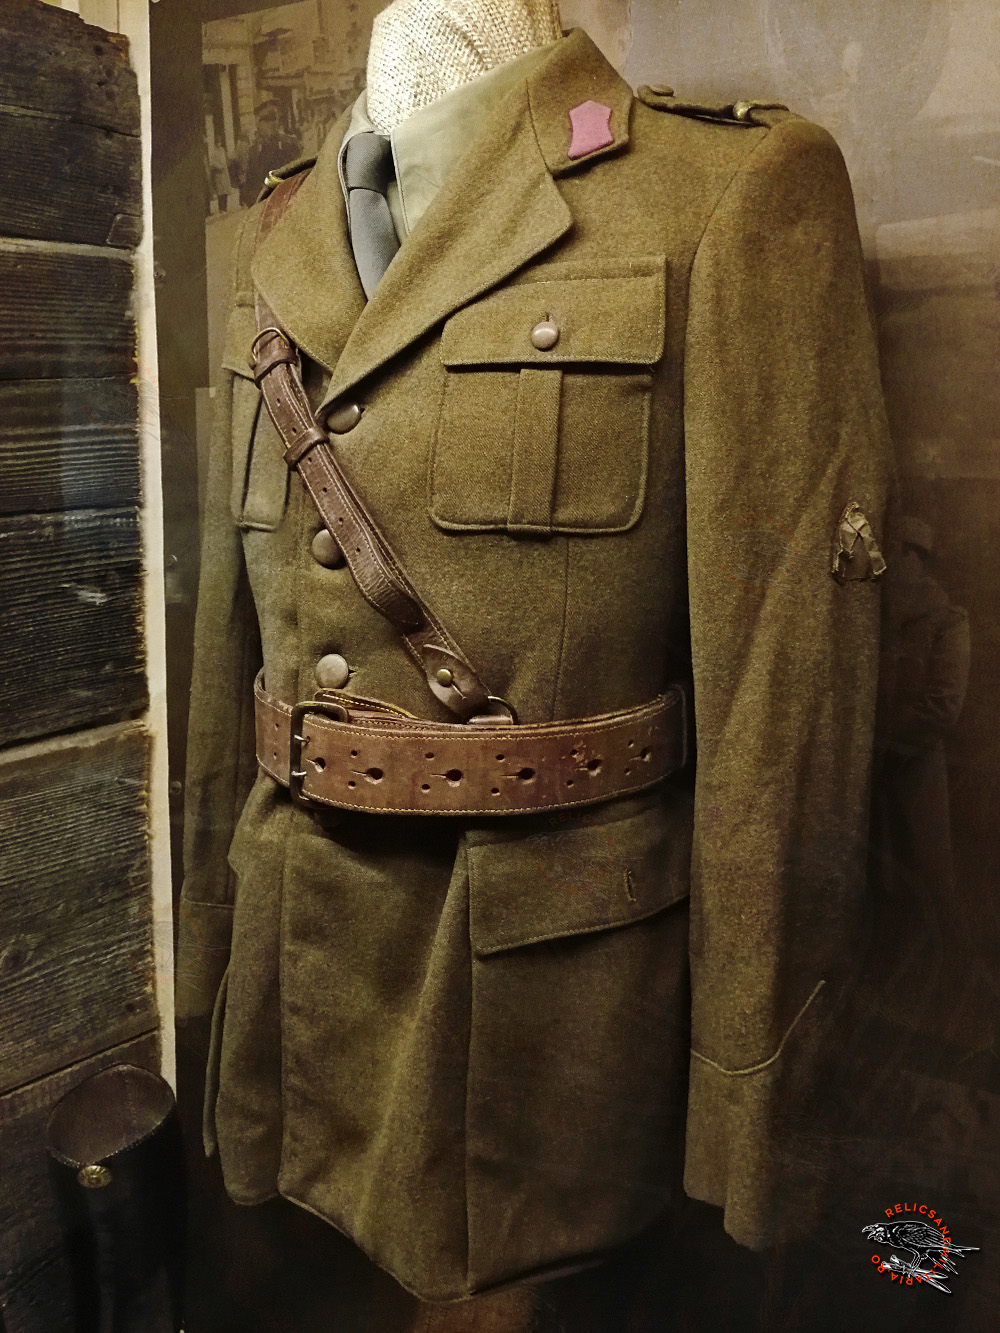 16 Romanian officer WW2 uniform with chevron for wounded